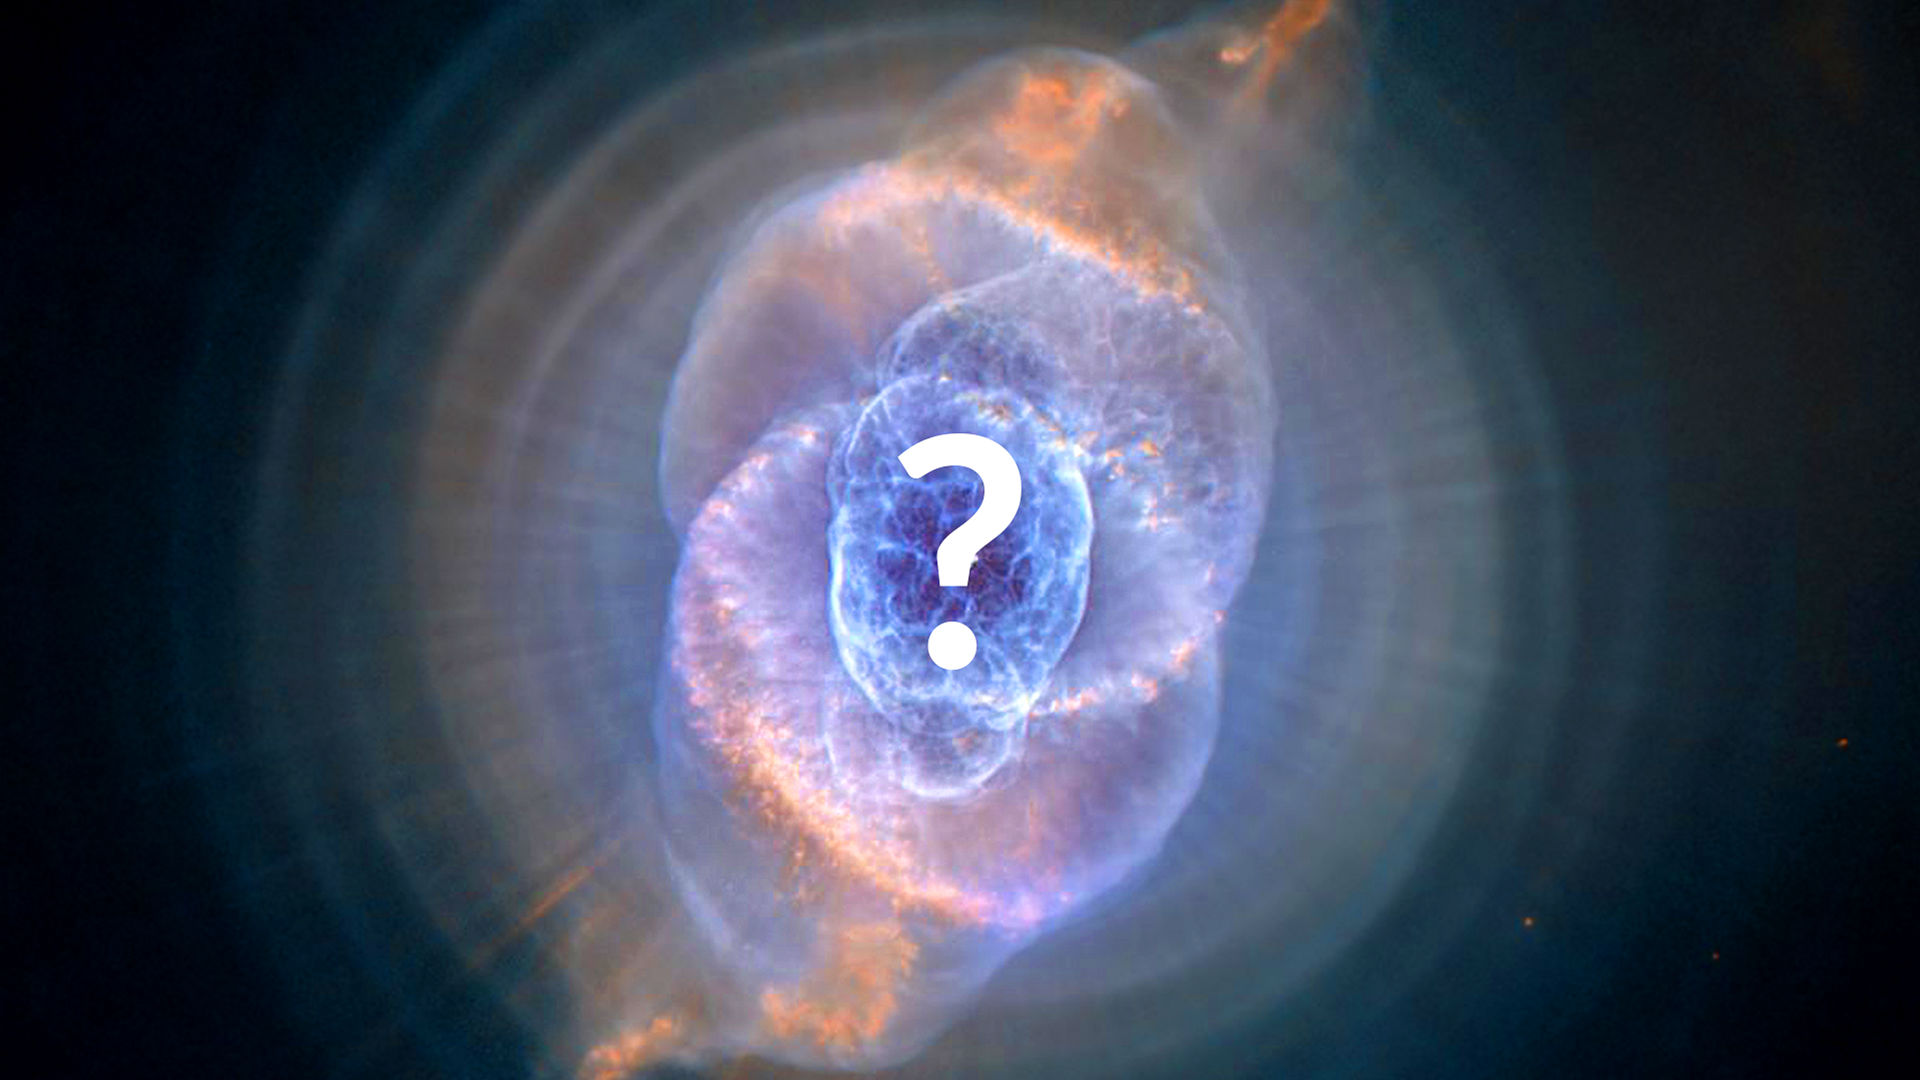 Guess the Nebula!